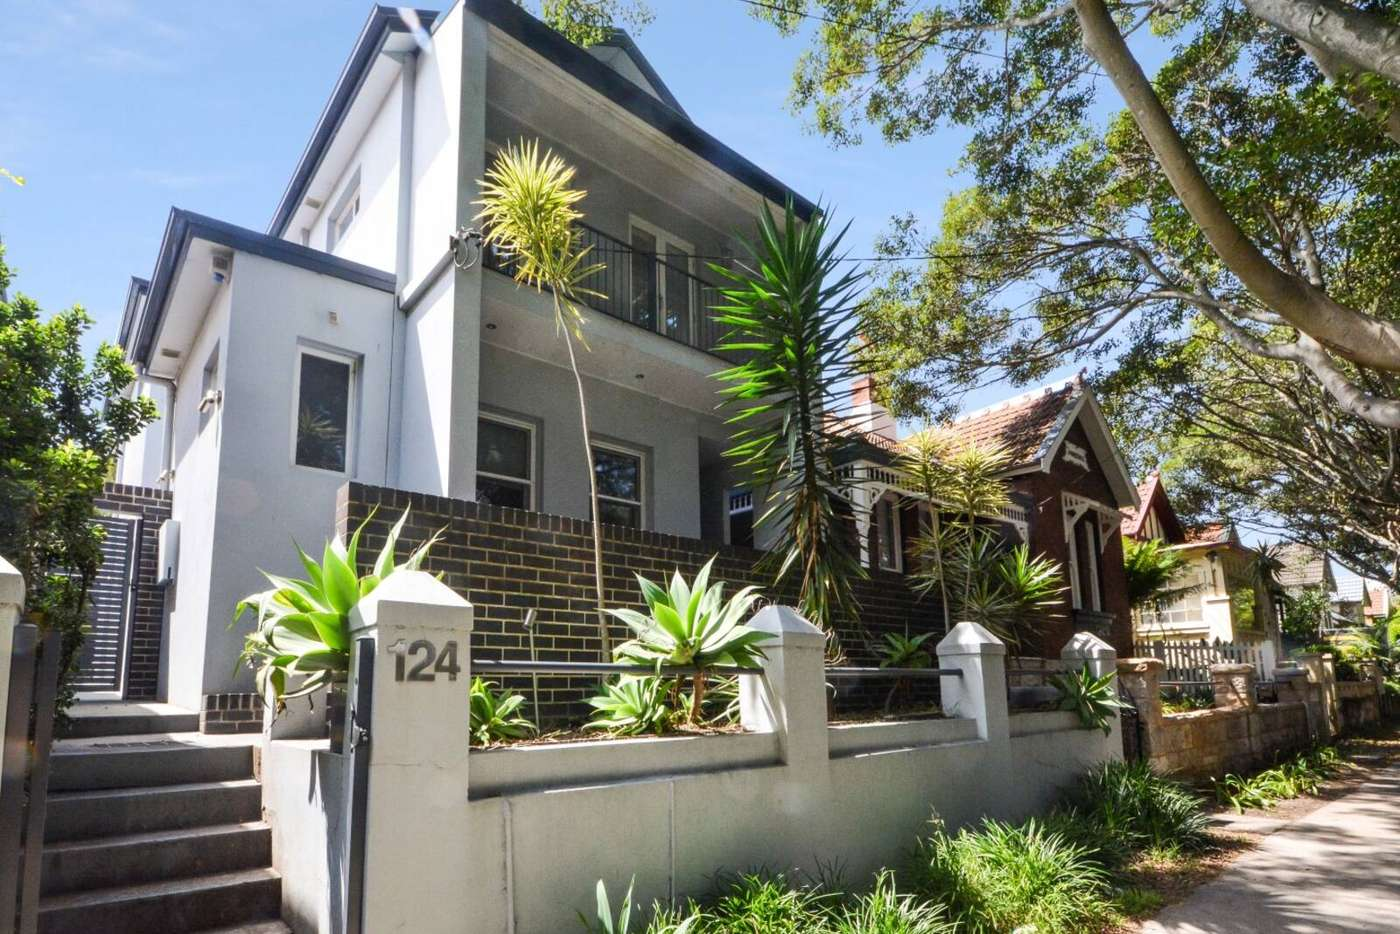 Main view of Homely house listing, 124 Newland Street, Queens Park NSW 2022